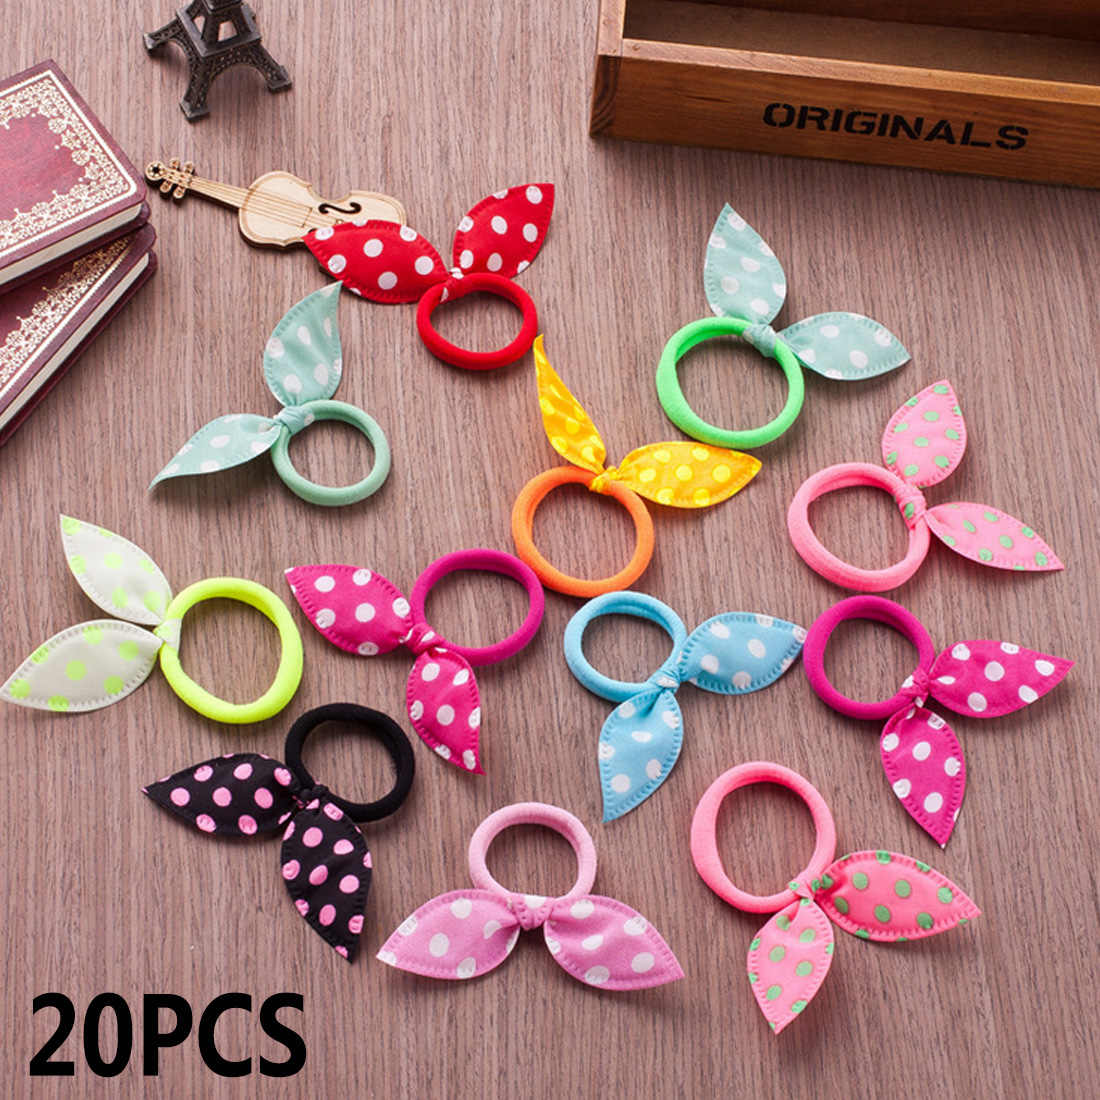 20pcs/set Rabbit ears Hair band Children kids Hair Accessories Scrunchies Elastic Hair Band for women girl rubber band